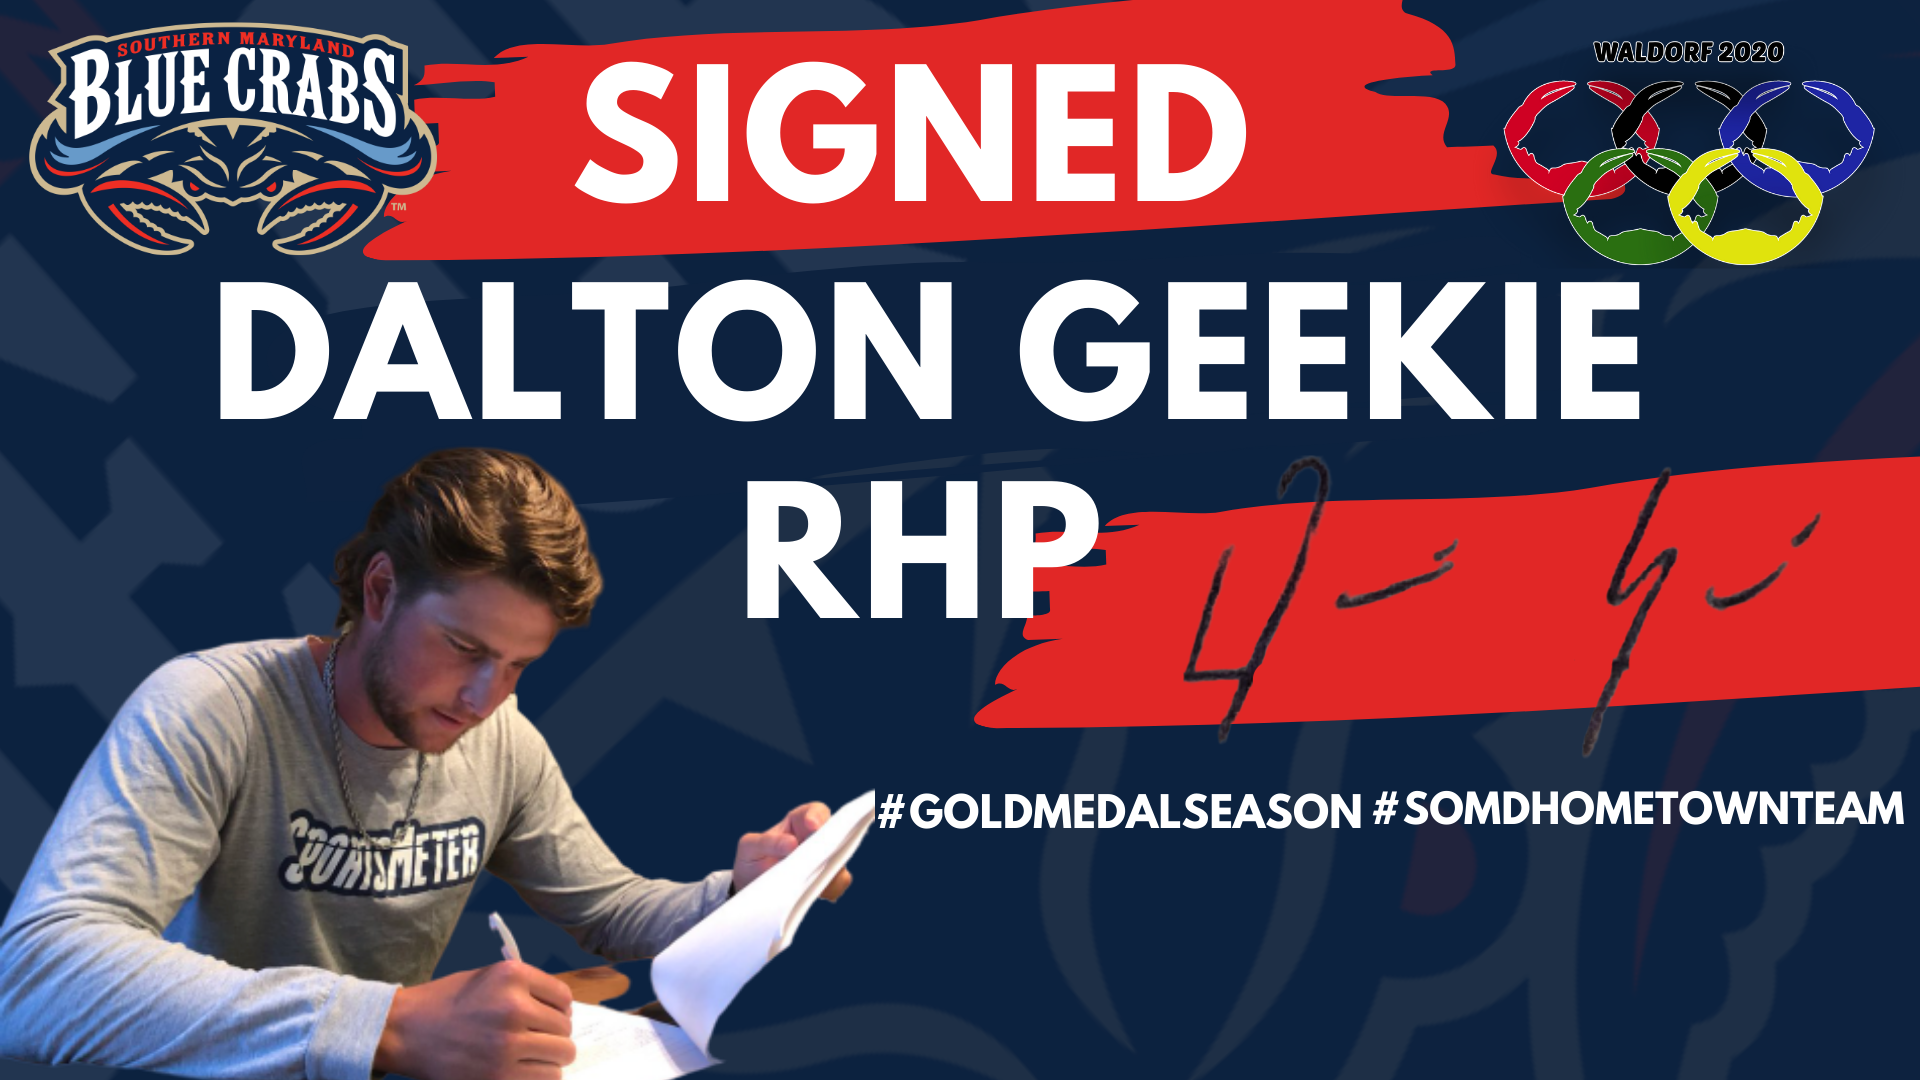 Former Cubs, Braves Prospect Dalton Geekie Kicks Off 2020 Blue Crabs Signings